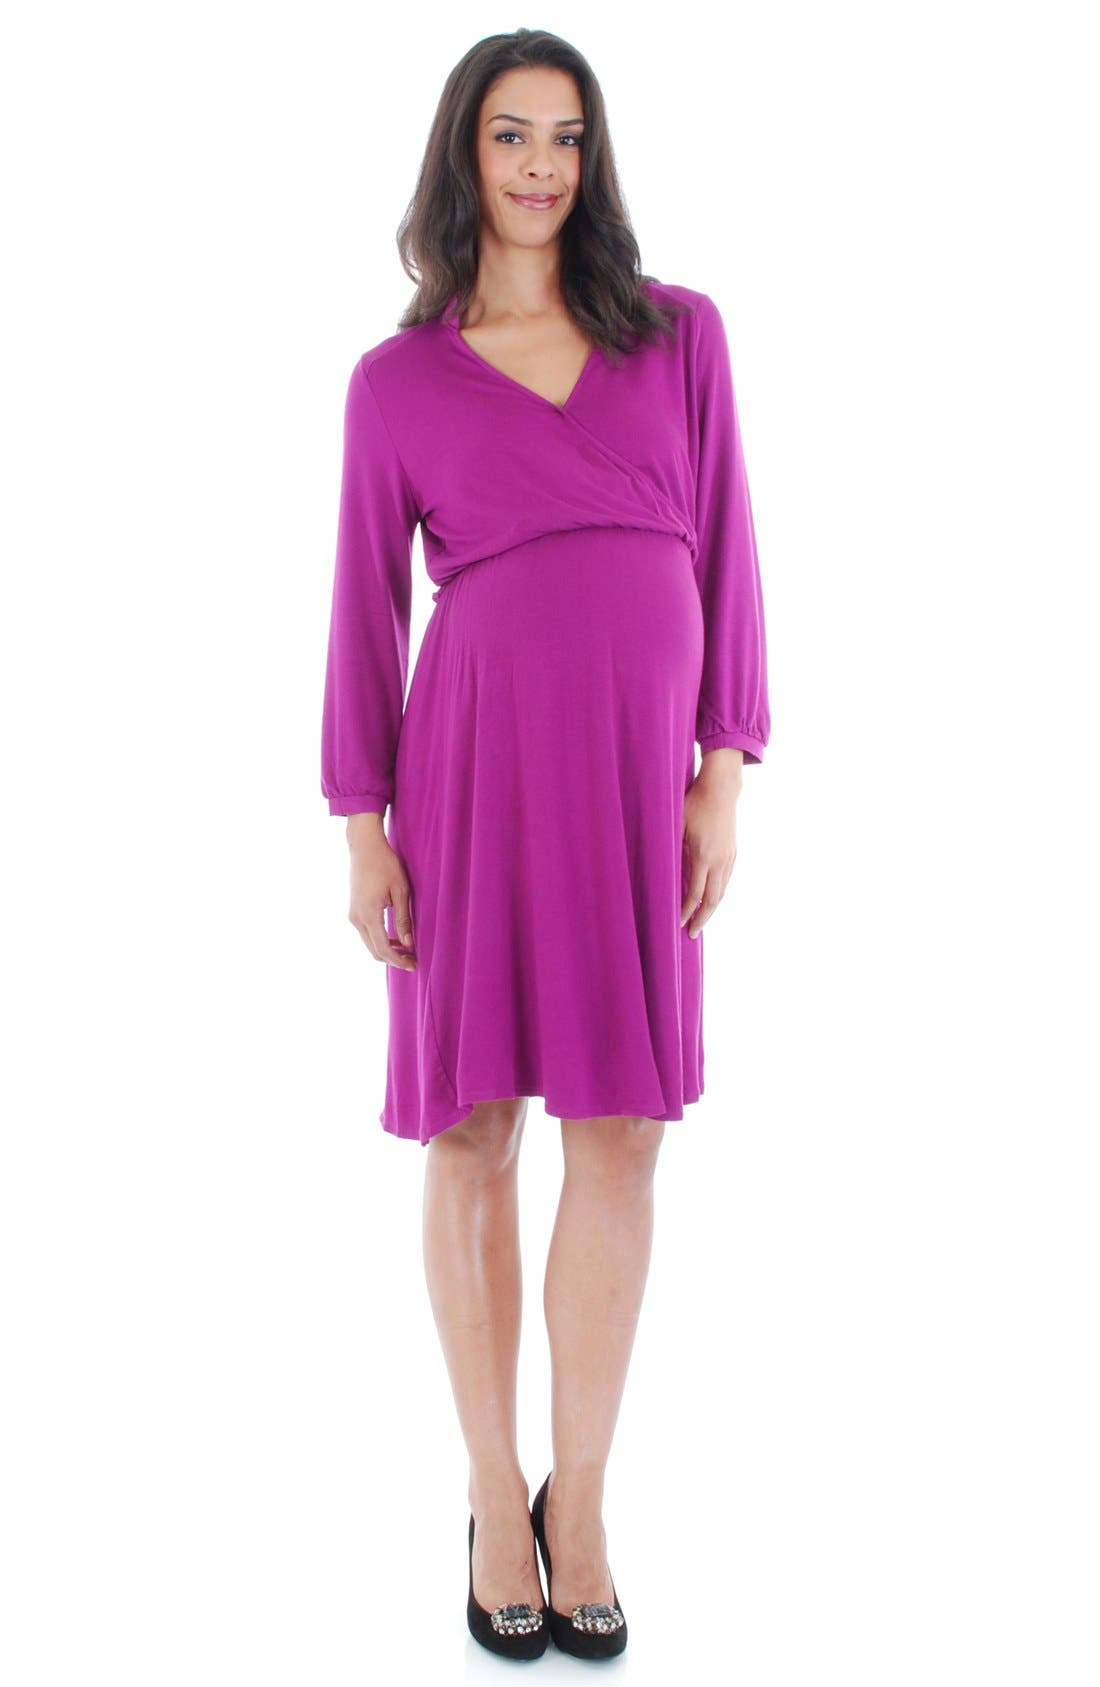 EVERLY GREY Everly Grey 'Sicily' Maternity/Nursing Dress